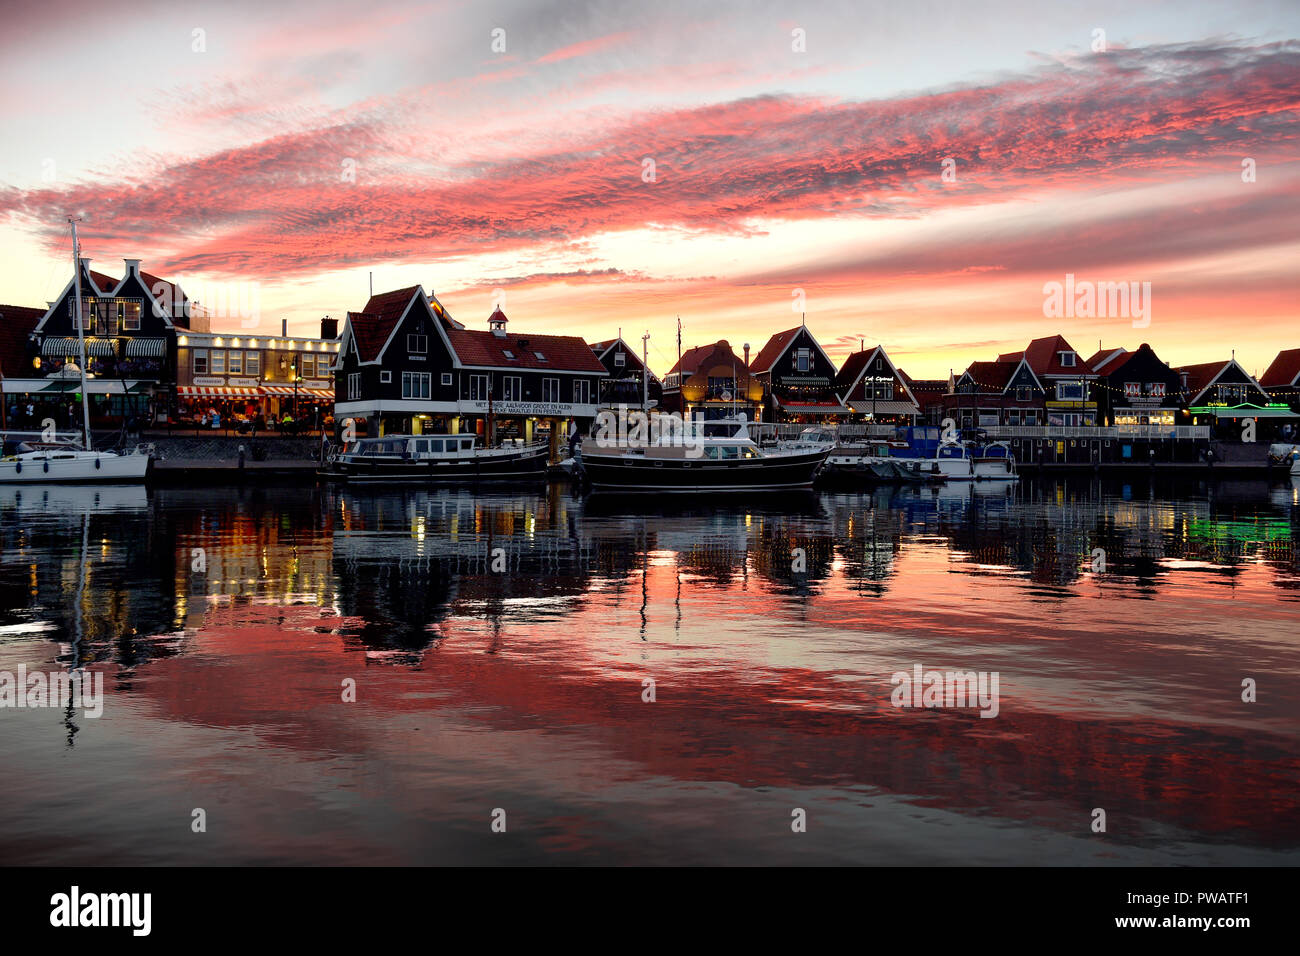 A charming red sunset over Volendam harbor - Stock Image